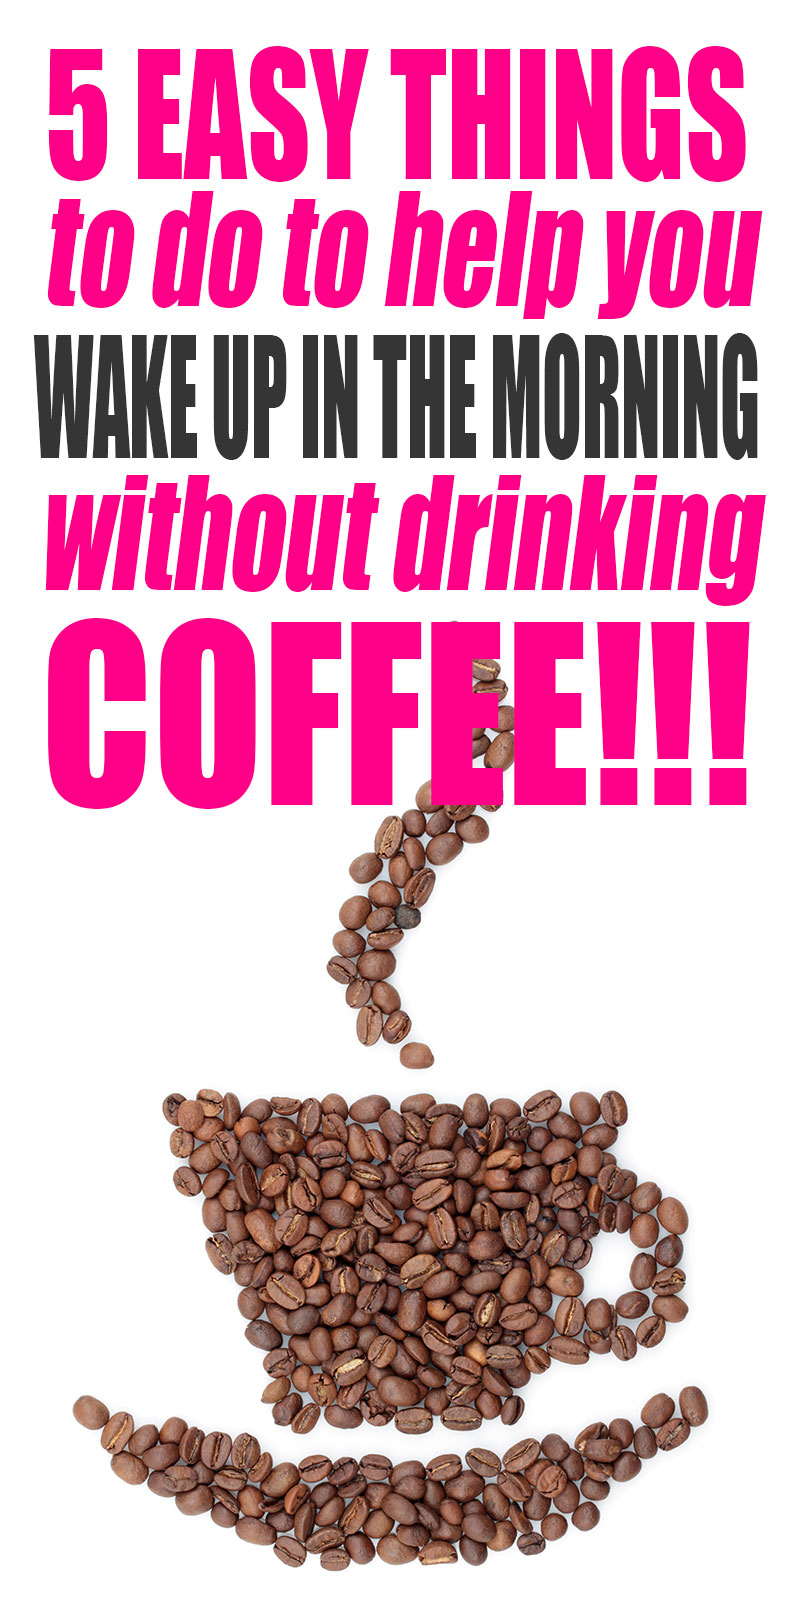 5 Easy Things to Do to Help You Wake Up in the Morning Without Drinking Coffee!  #coffee #morningroutine   Coffee   Morning Routine   Energy   Healthy